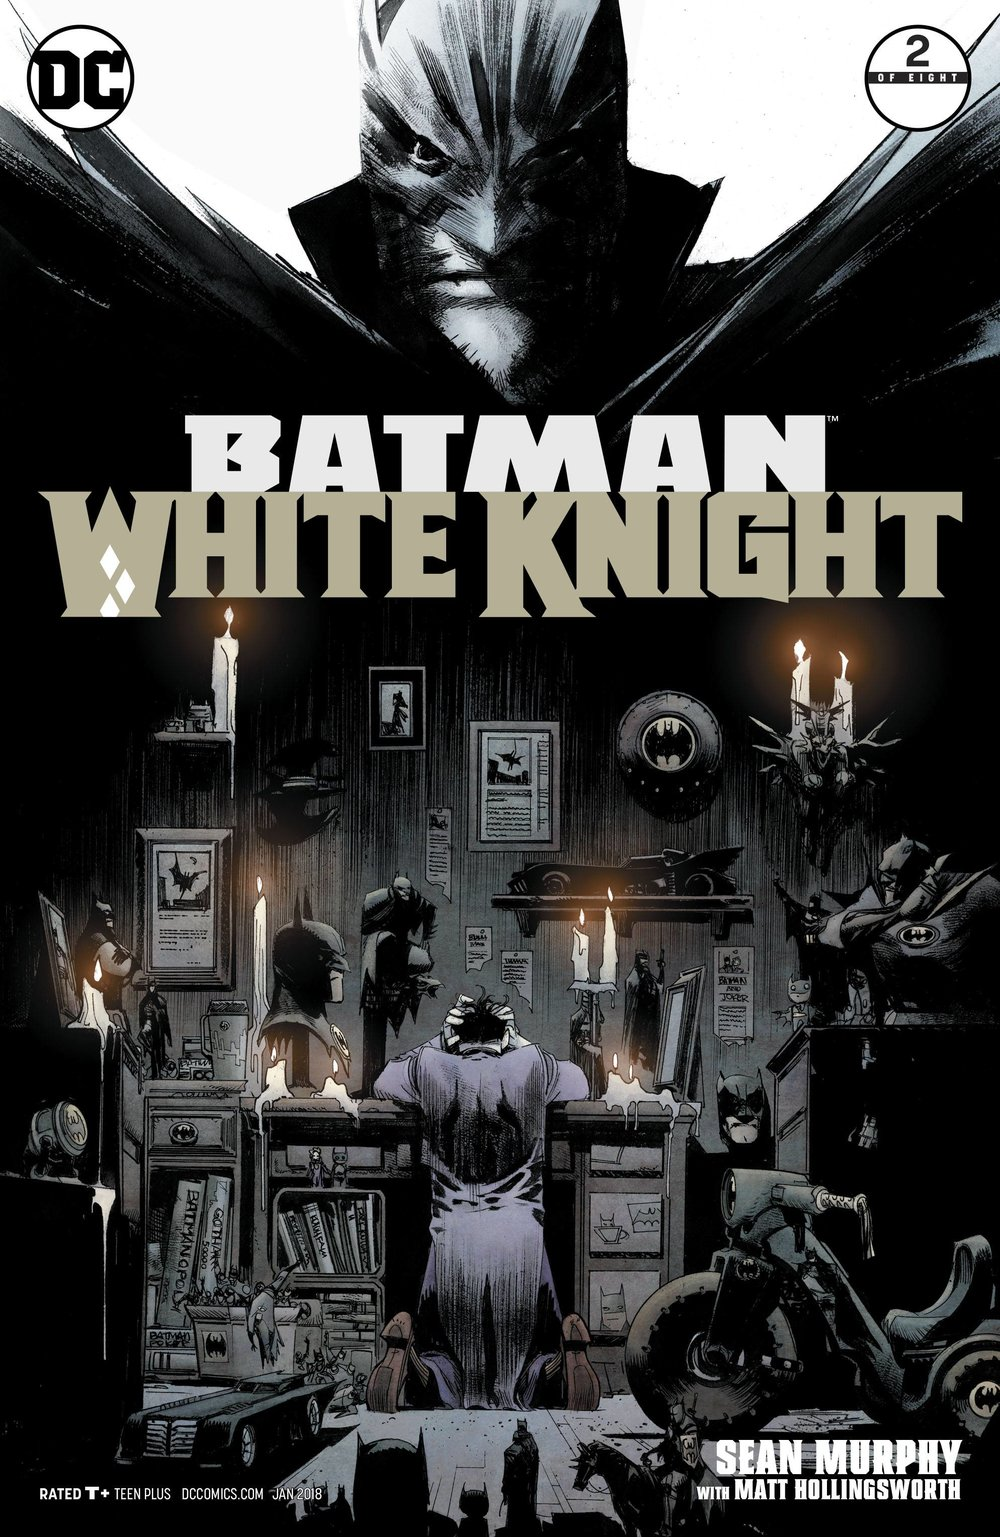 Batman White Knight #2